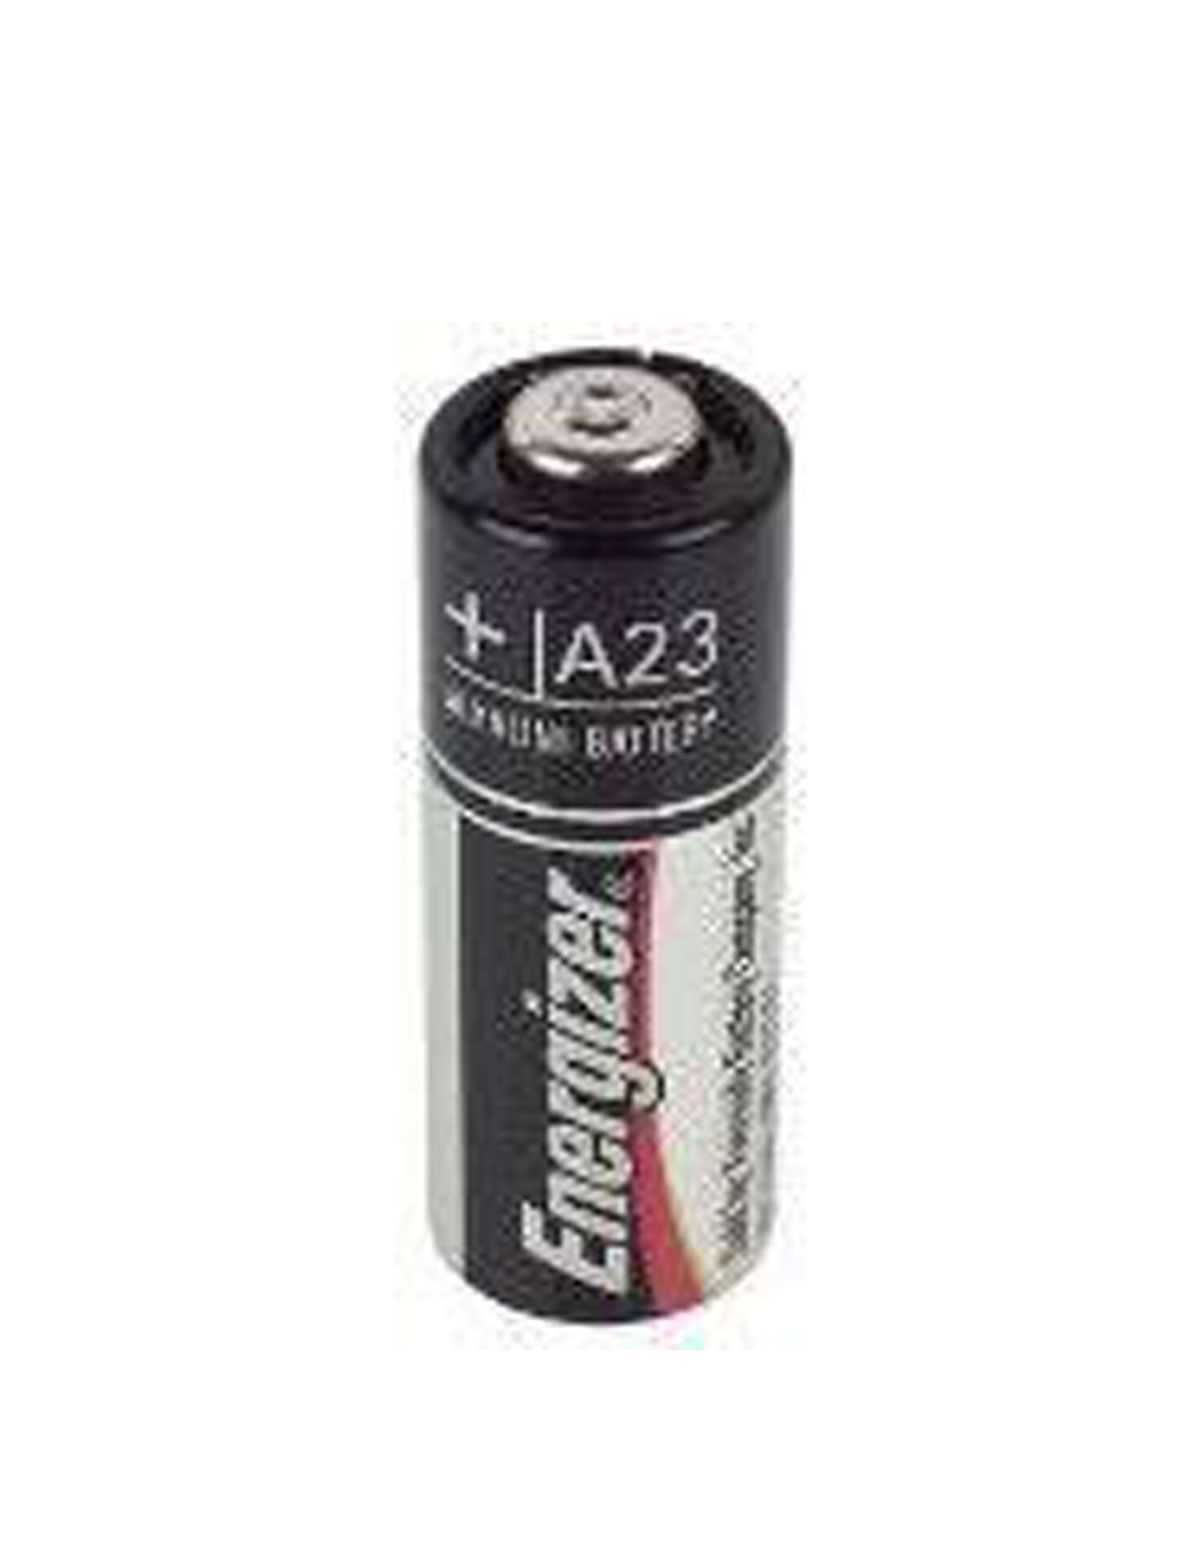 Energizer 12V A23 Battery